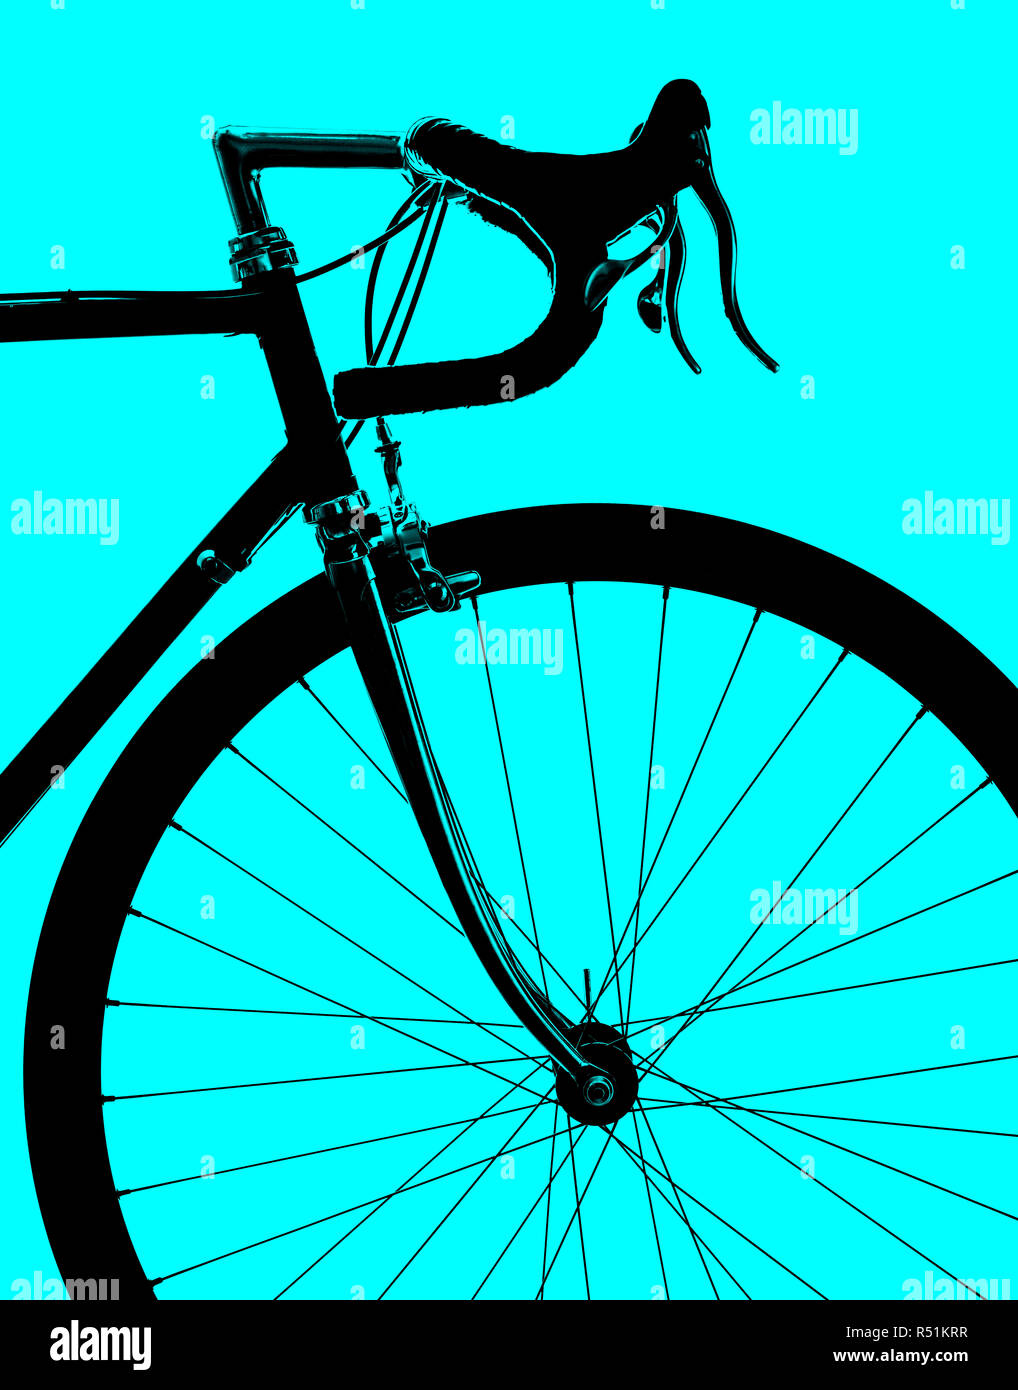 766b8bde746 Profile of a sports vintage road bike isolated on a blue background.  Conceptual background